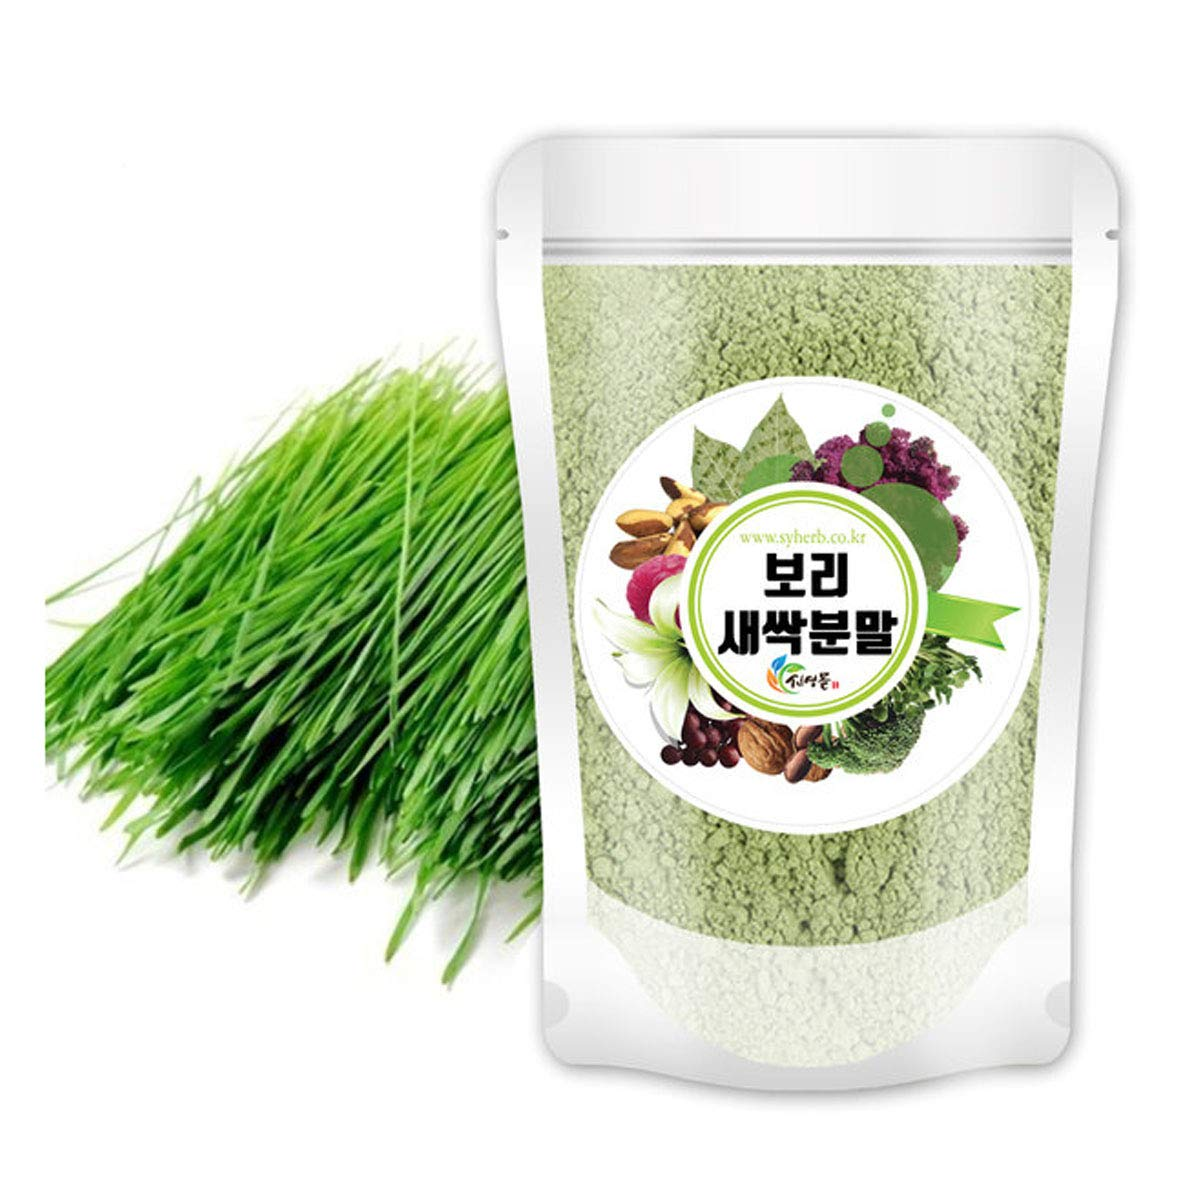 Sinyoung Mall Barley Sprout Powder Product of Korea 500g by Sinyoung Mall